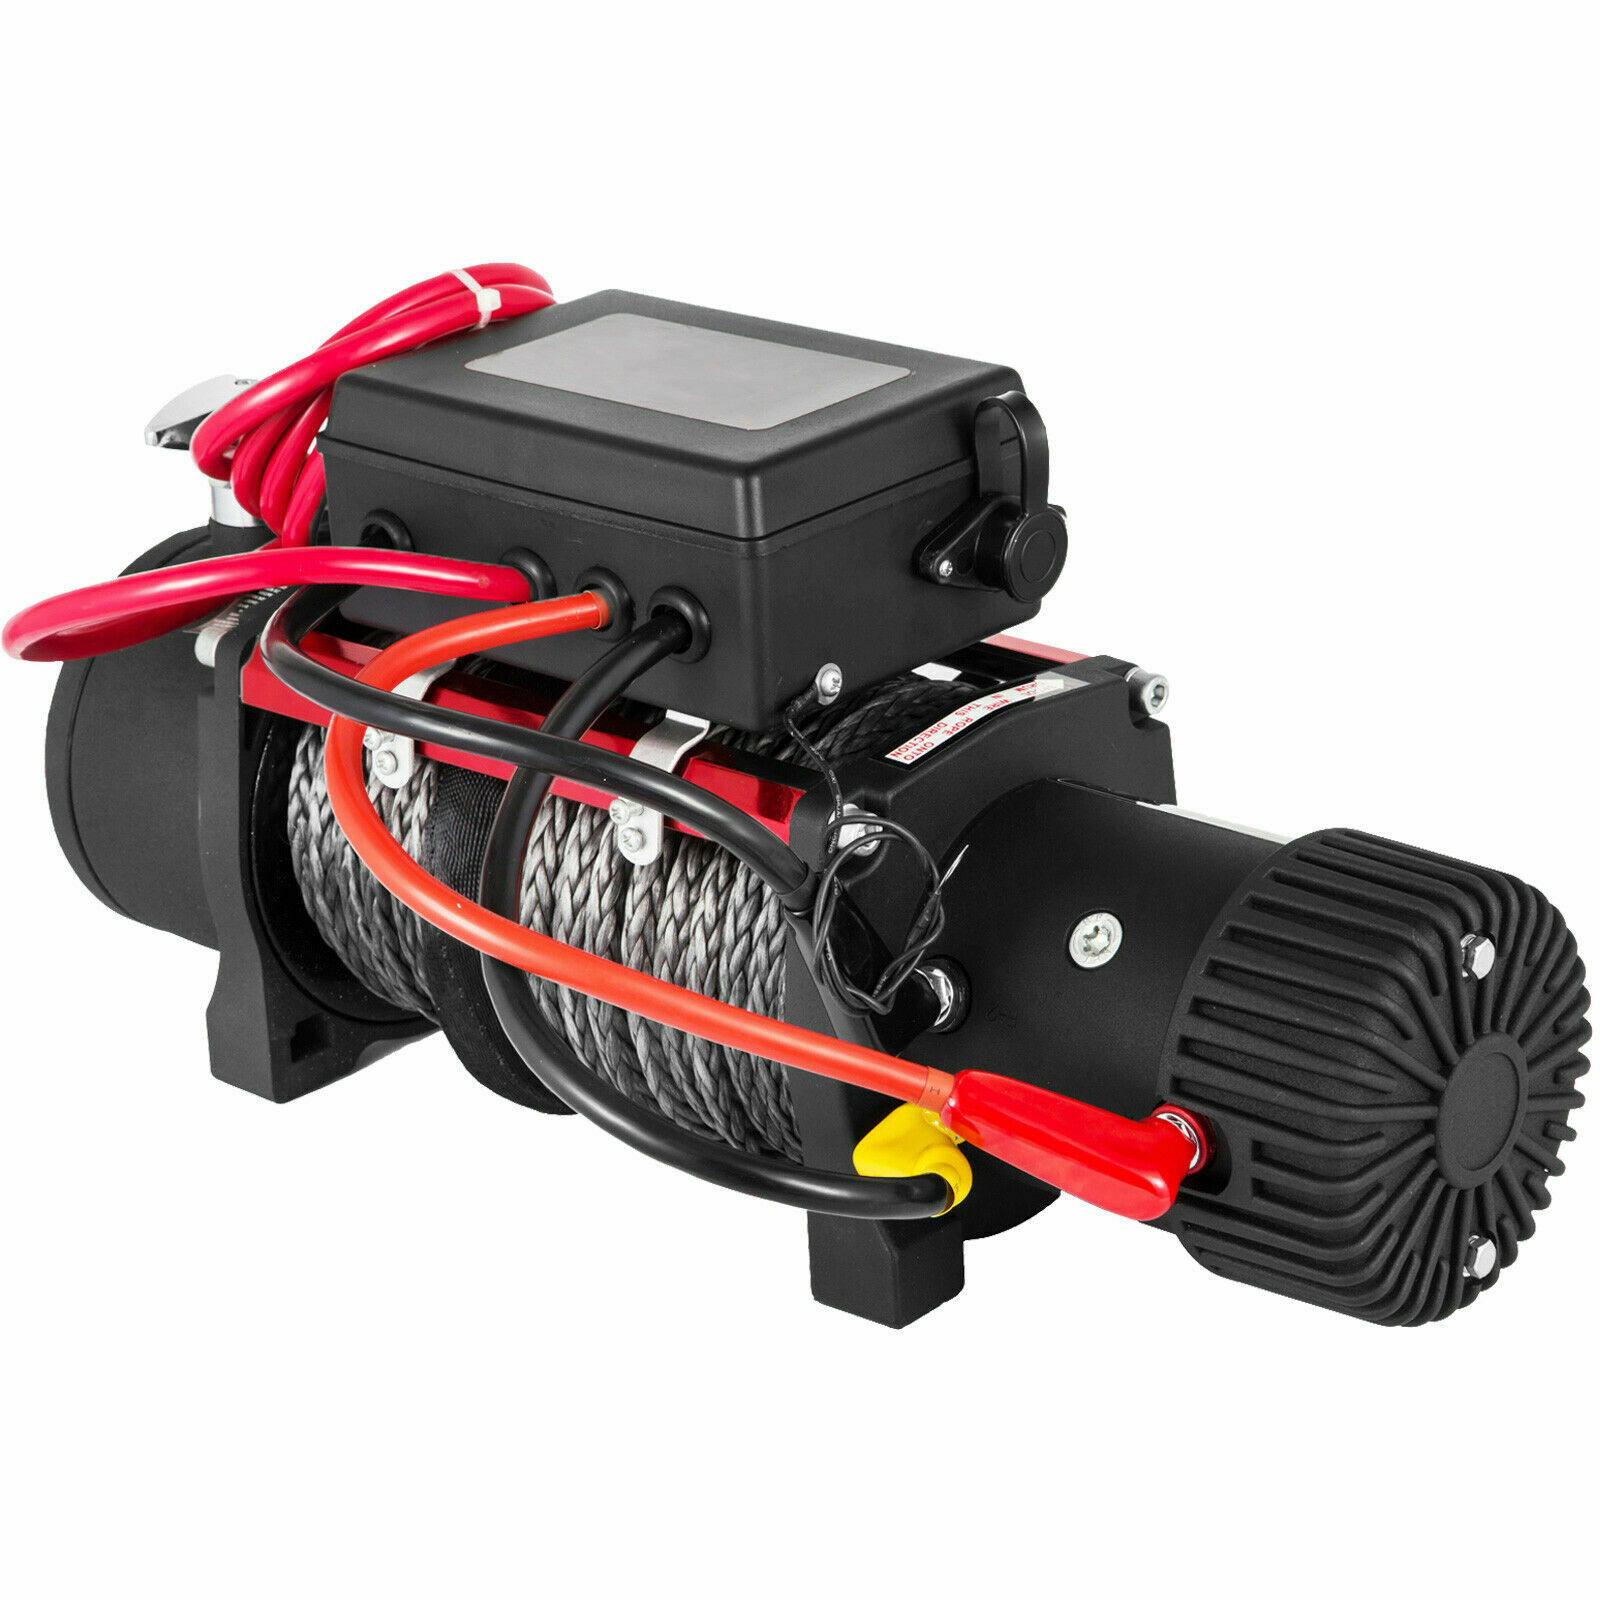 Electric Winch + 27M Synthetic Rope, 2 Wireless Control For ATV SUV Boat Truck Trailer Recovery Off Road Winch 13500LBS 12V